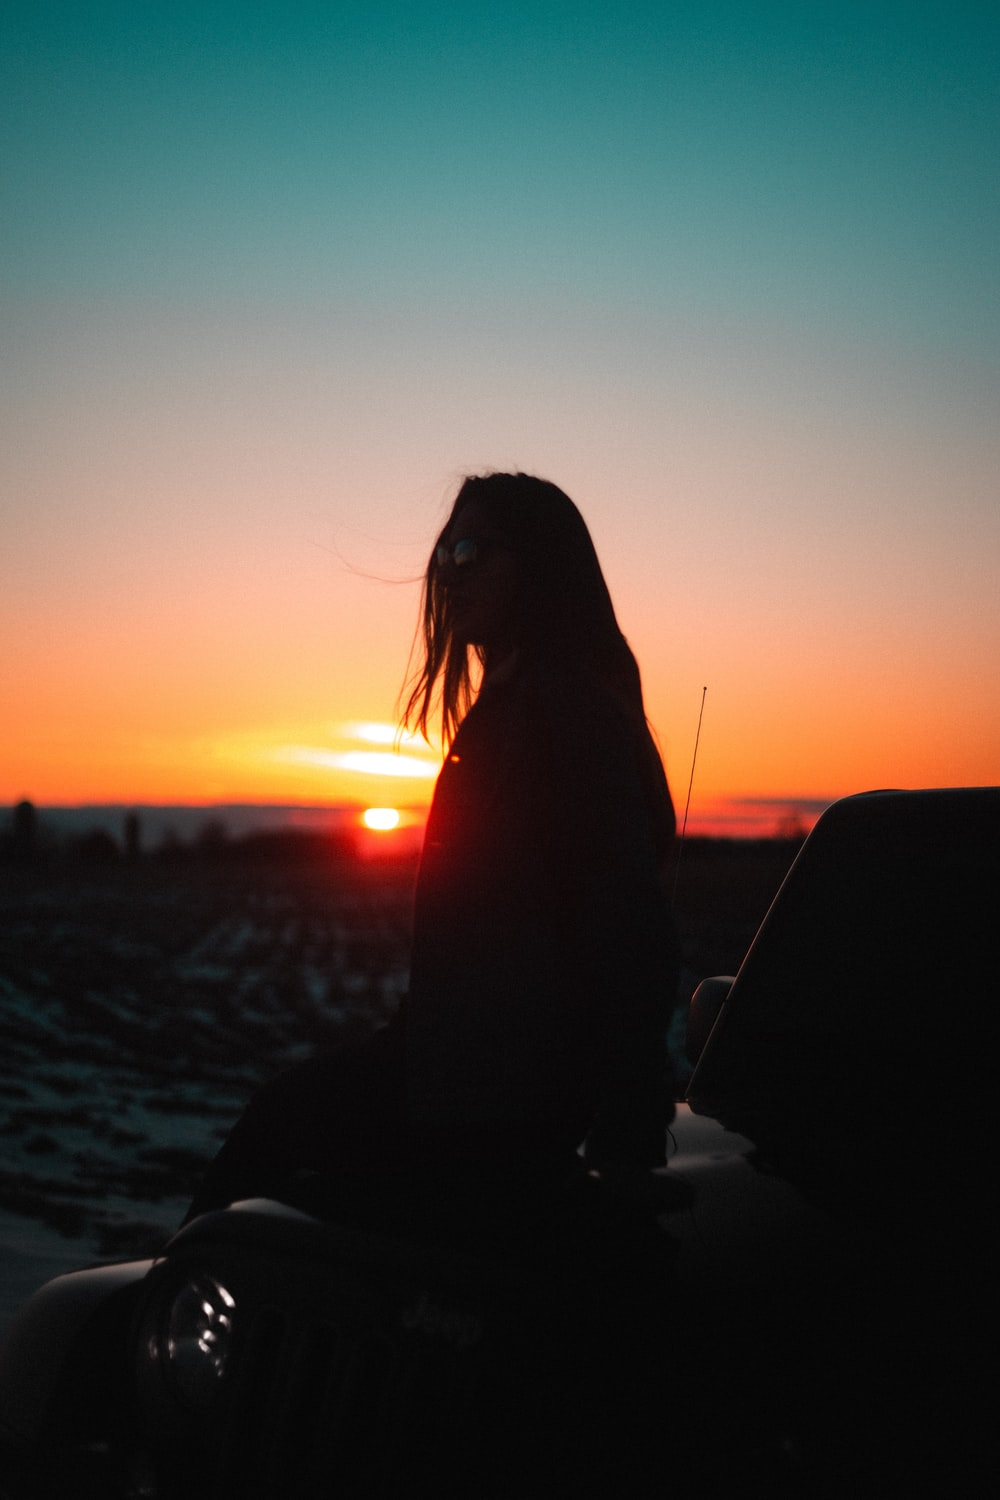 silhouette of girl sitting during golden hour